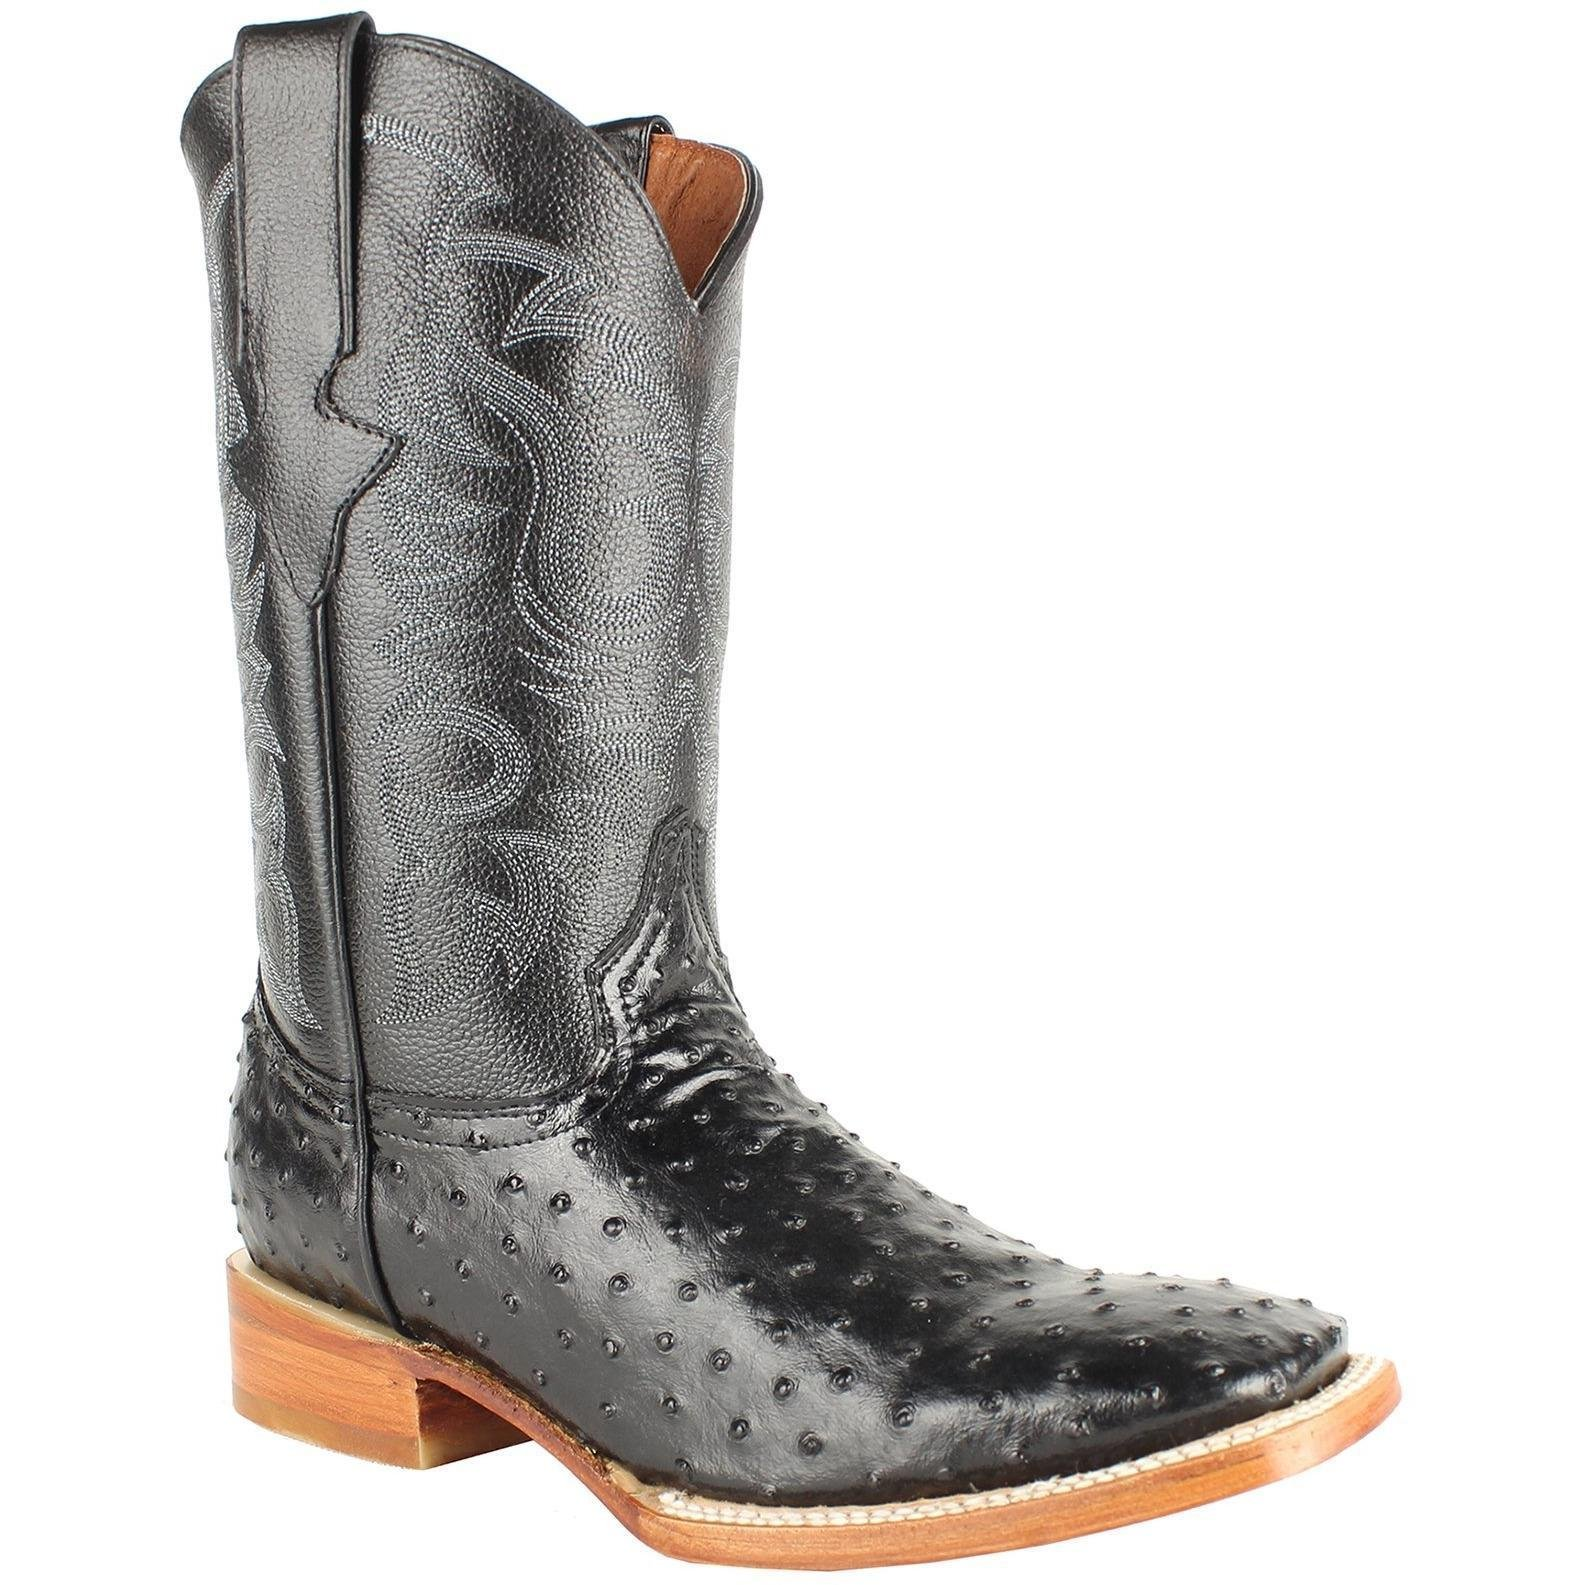 Men Genuine Cowhide Leather Ostrich Print Square Toe Western Boots_Black_10 by Dona Michi (Image #1)